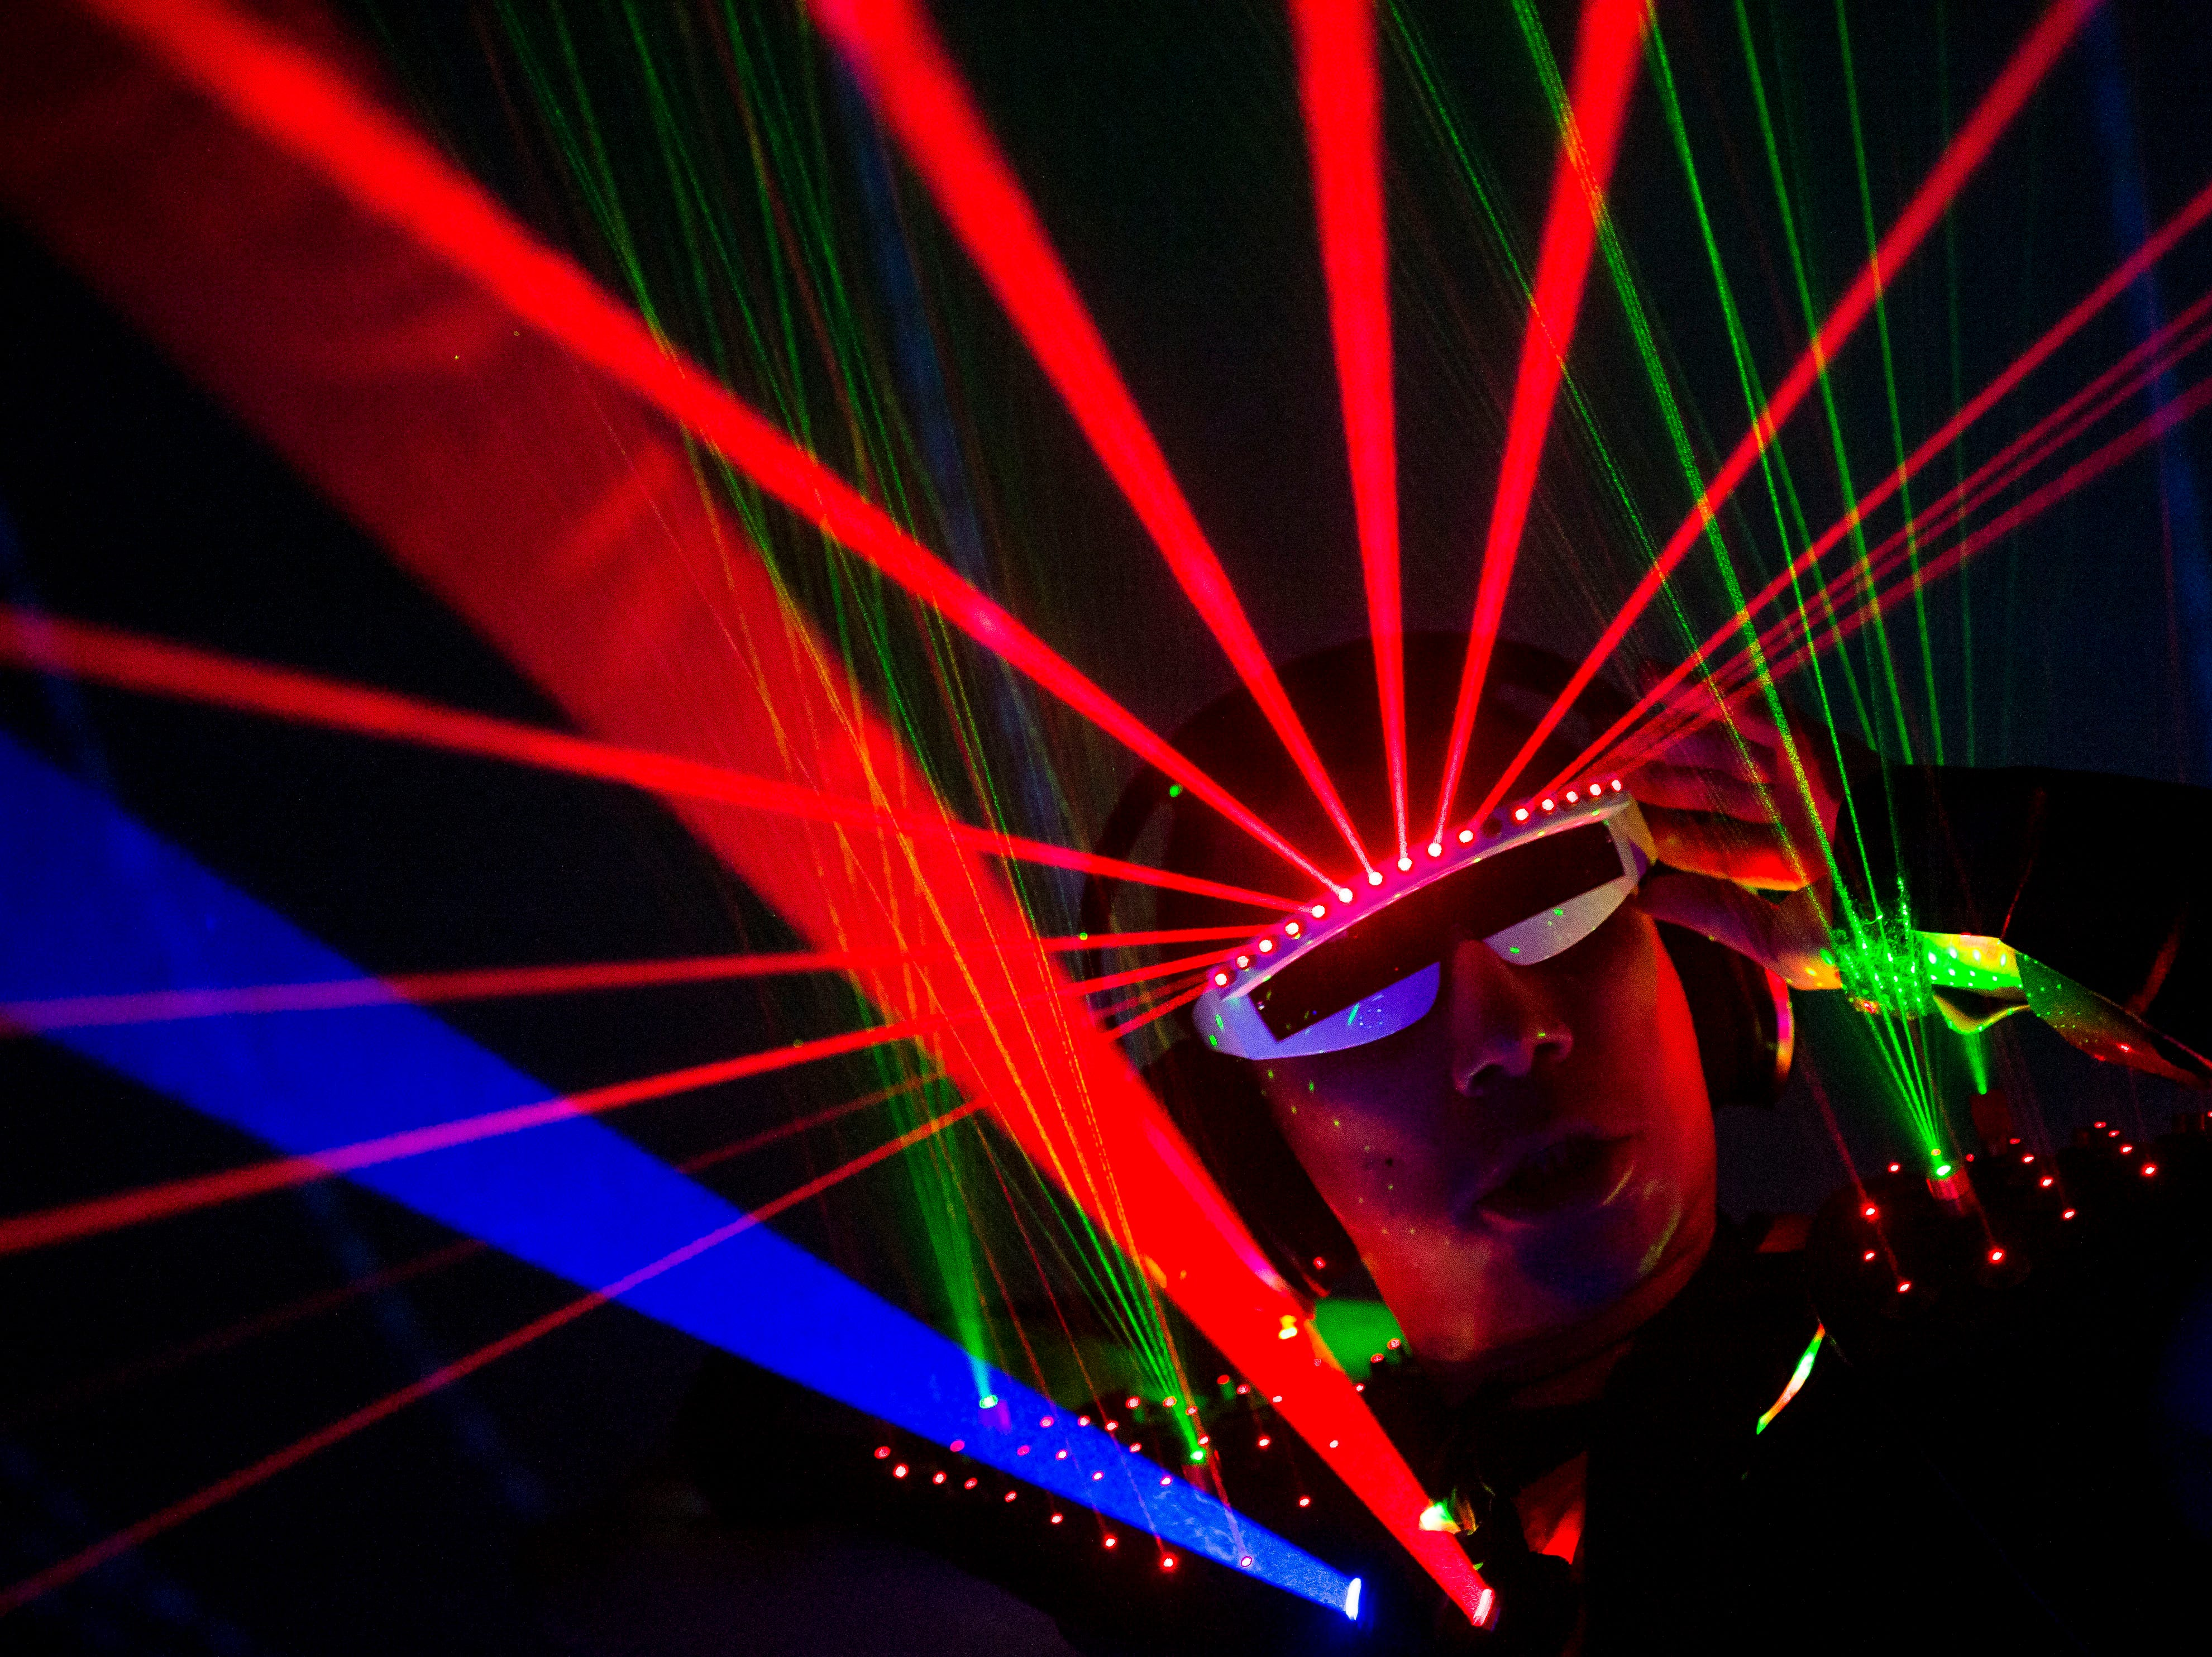 One-man laser and bass show HYZENBORG plays his set at the Fort Collins Museum of Discovery's dome during FoCoMX on Friday, April 27, 2018, in Fort Collins, Colo.